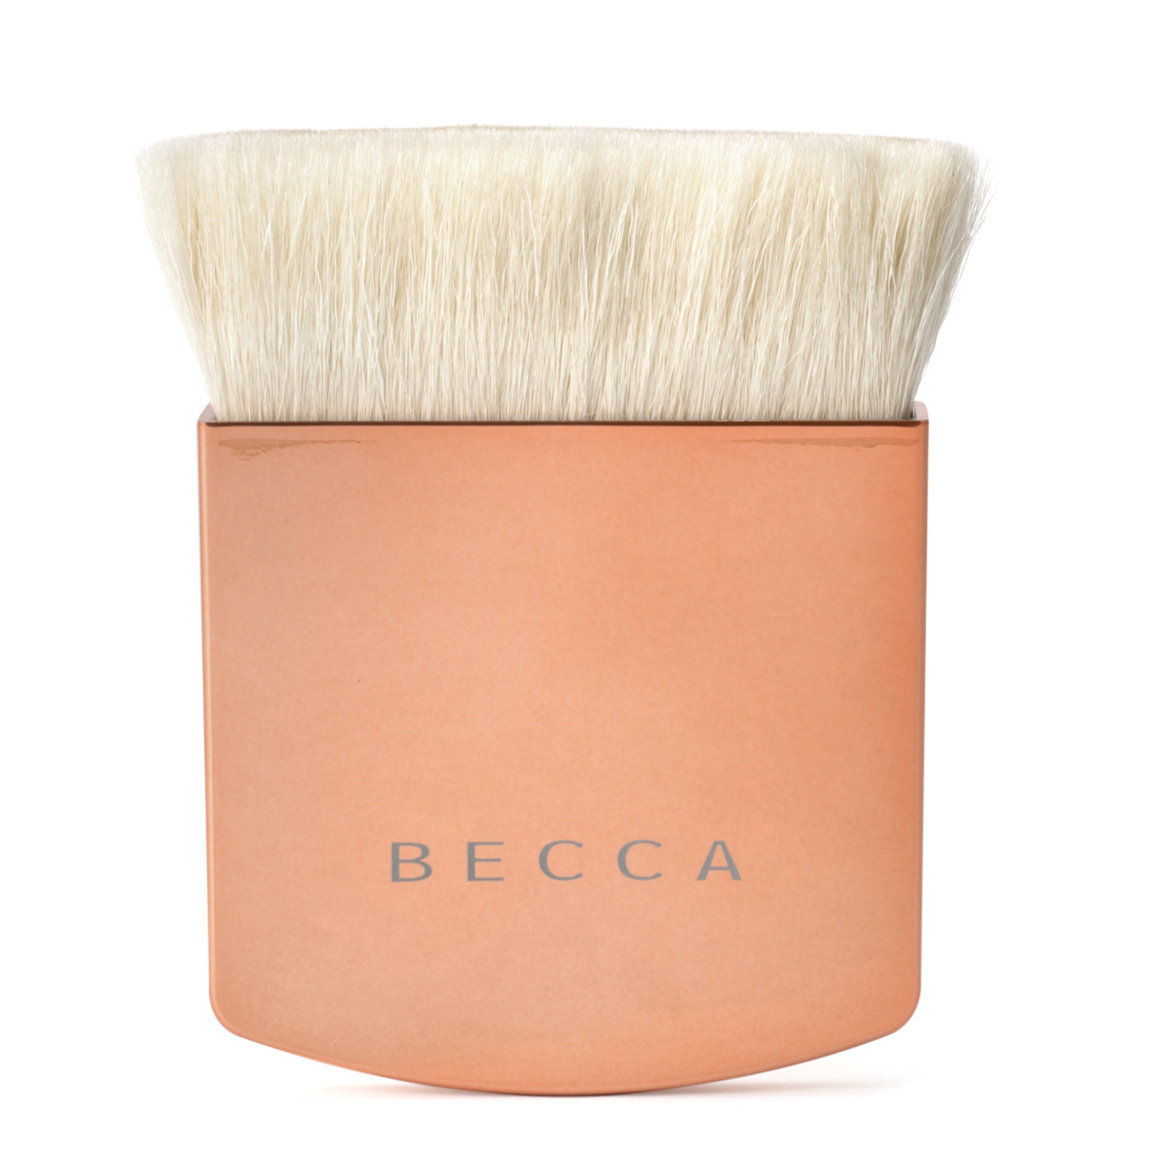 BECCA The One Perfecting Brush Blushed Copper product smear.